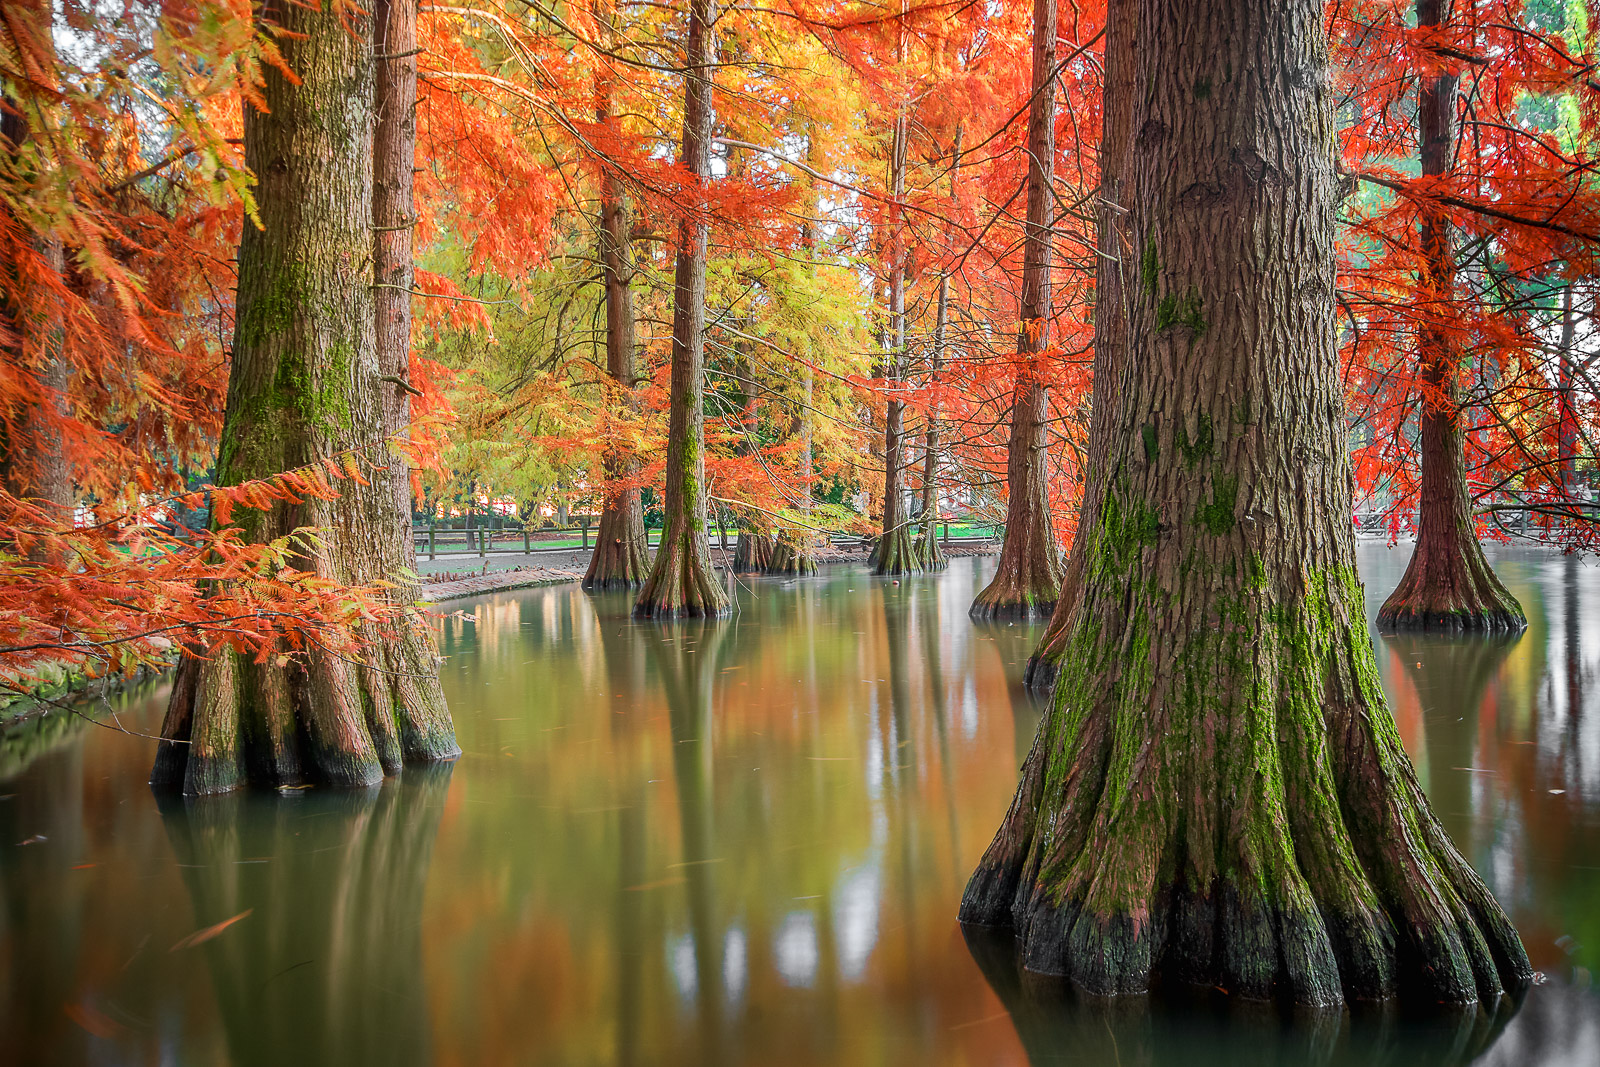 Autumn in the lake...